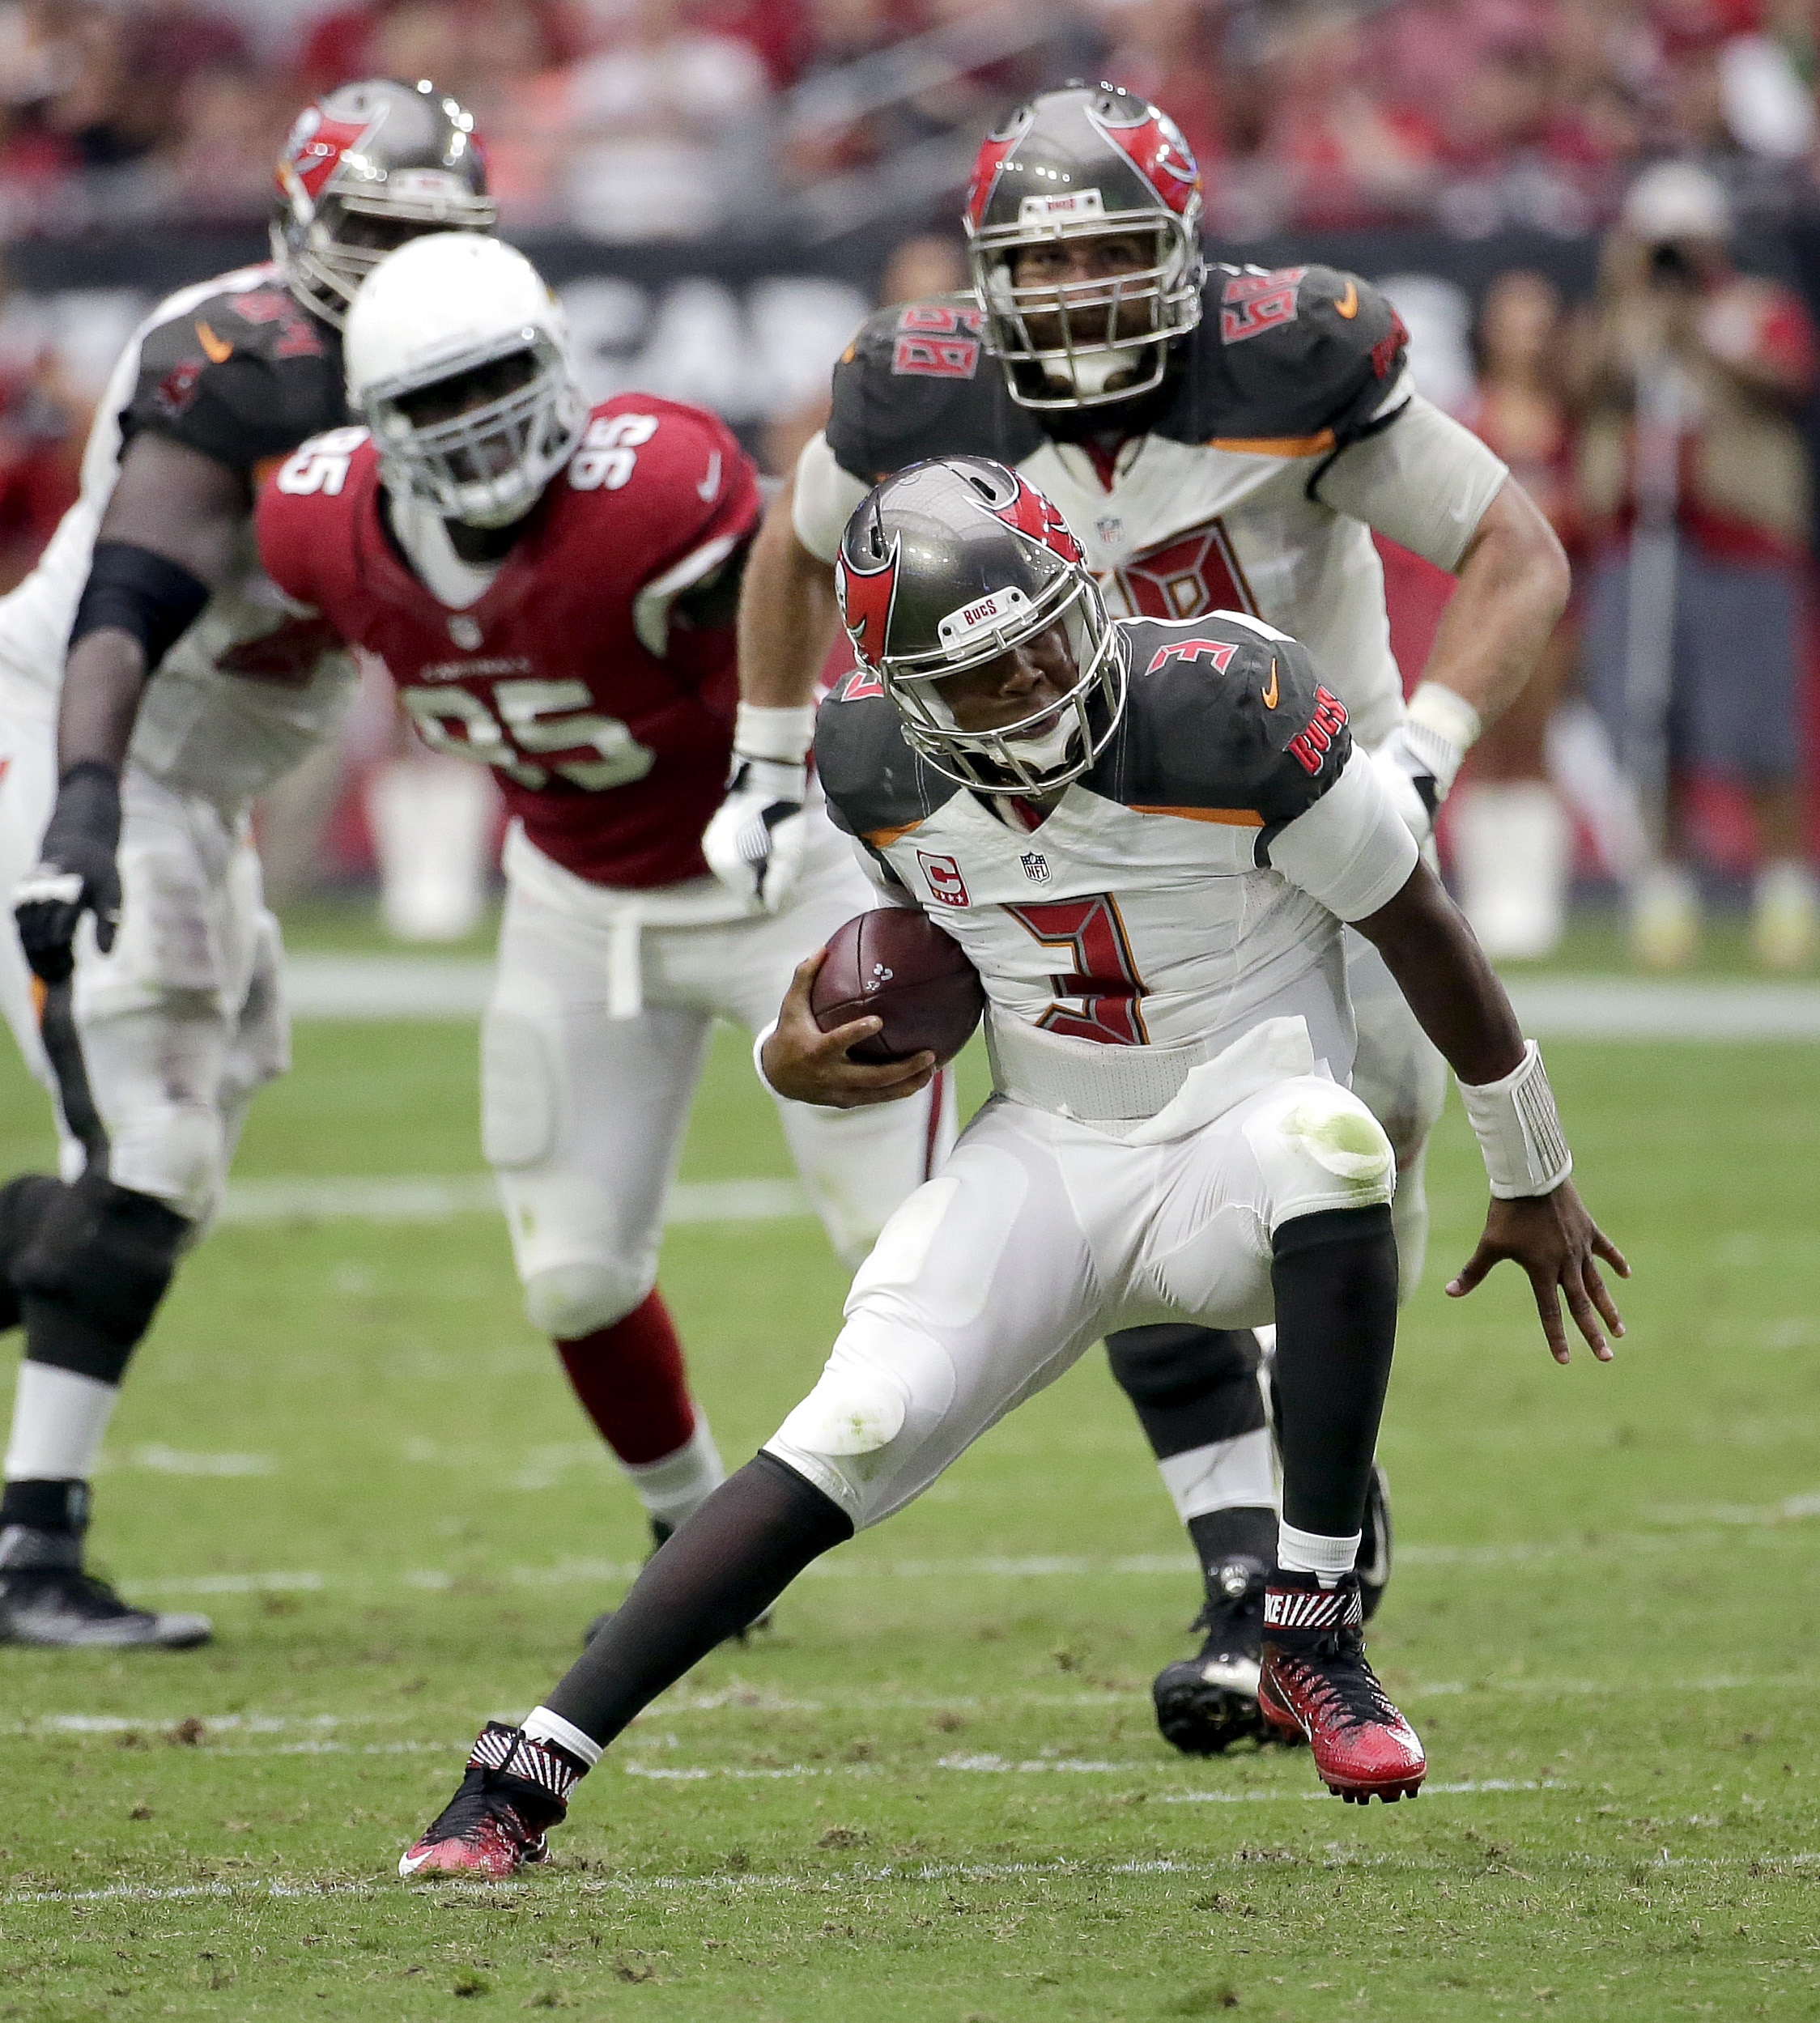 Tampa Bay Buccaneers quarterback Jameis Winston (3) scrambles against the Arizona Cardinals during the second half of an NFL football game, Sunday, Sept. 18, 2016, in Glendale, Ariz. (AP Photo/Rick Scuteri)